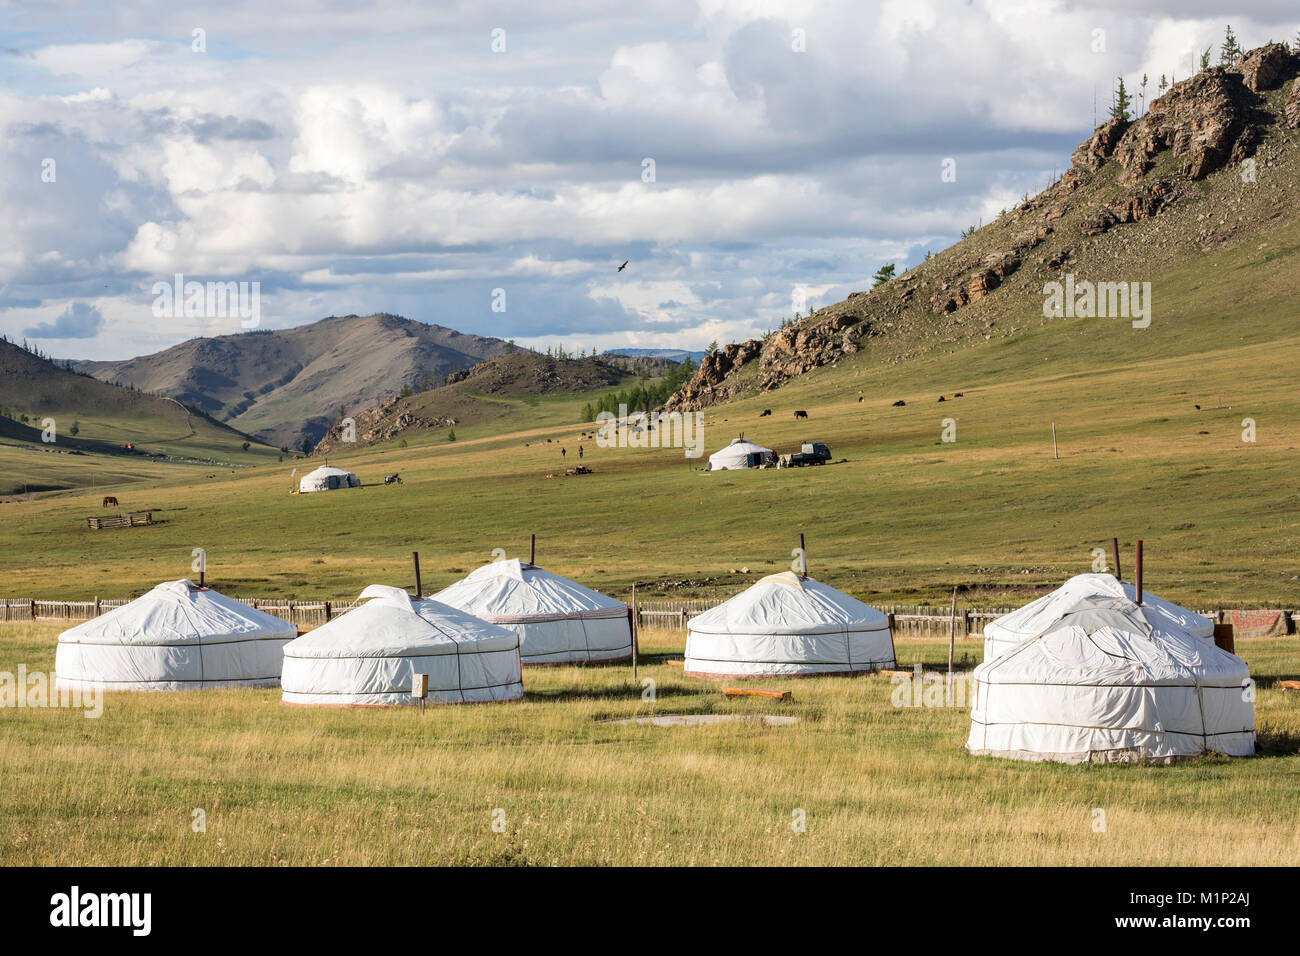 Tourist ger camp and Khangai mountains, Burentogtokh district, Hovsgol province, Mongolia, Central Asia, Asia - Stock Image